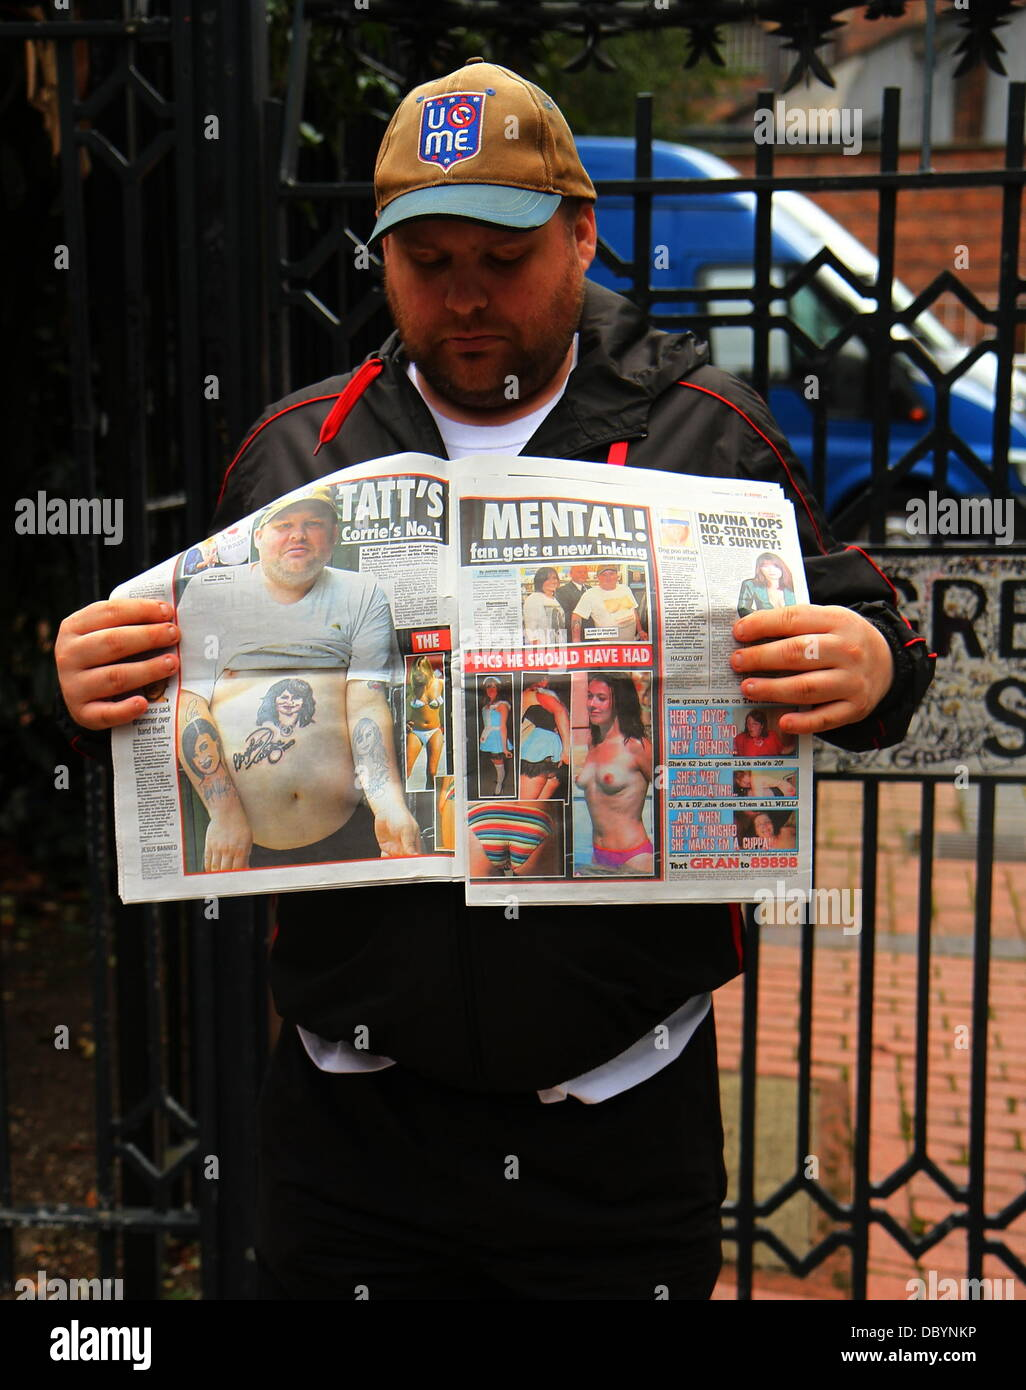 Coronation Street super fan Stephen Jones at Granada Studios with a copy of the Midweek Sport in which he's - Stock Image